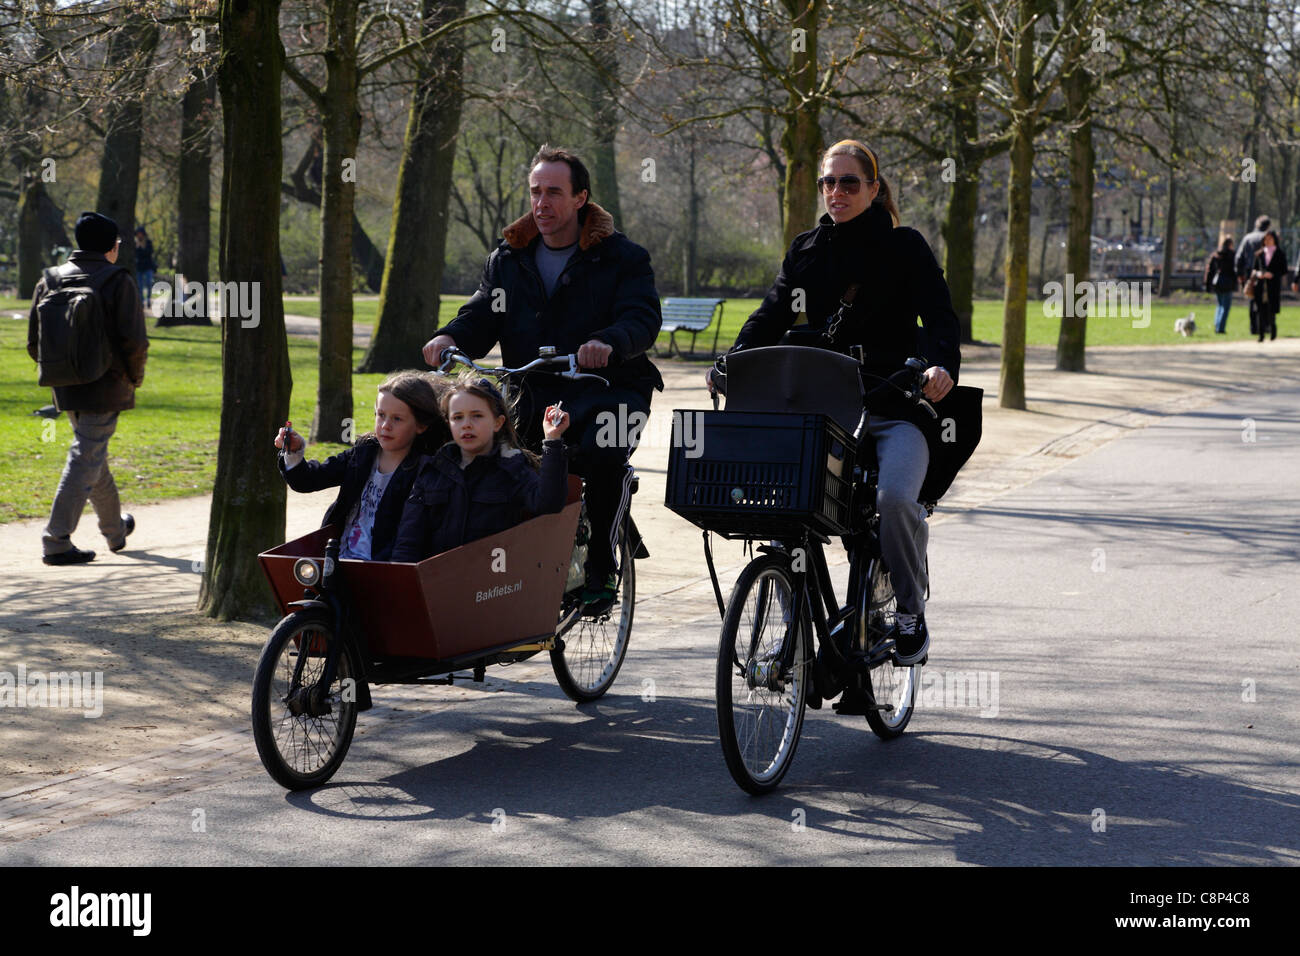 holland cycling stockfotos holland cycling bilder alamy. Black Bedroom Furniture Sets. Home Design Ideas